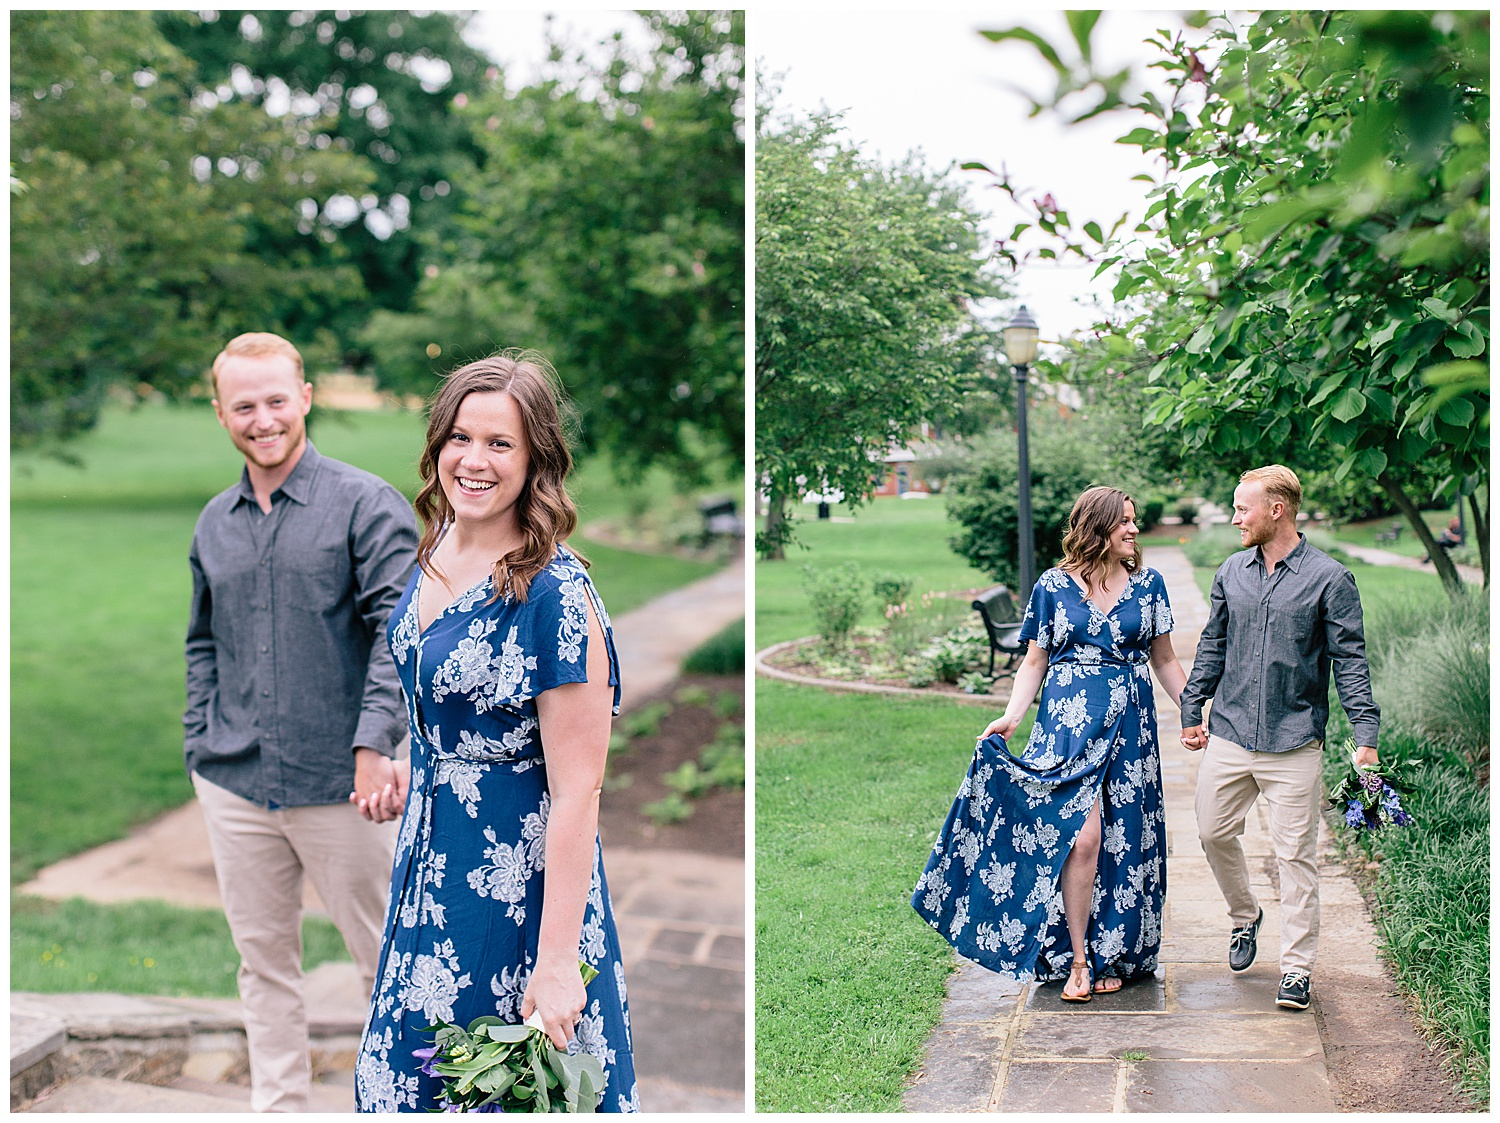 emily-belson-photography-frederick-md-engagement-03.jpg